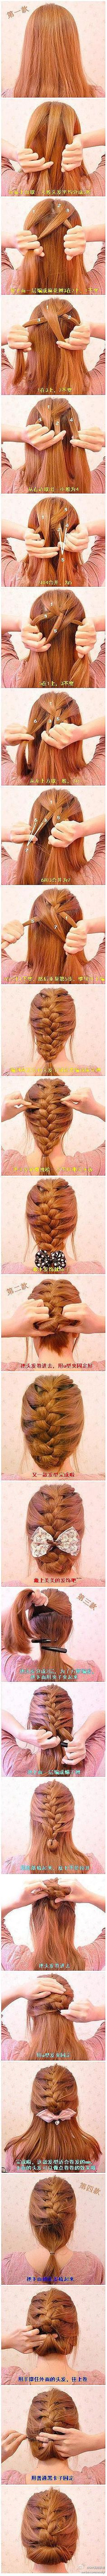 DIY Scorpion Braid Hairstyle